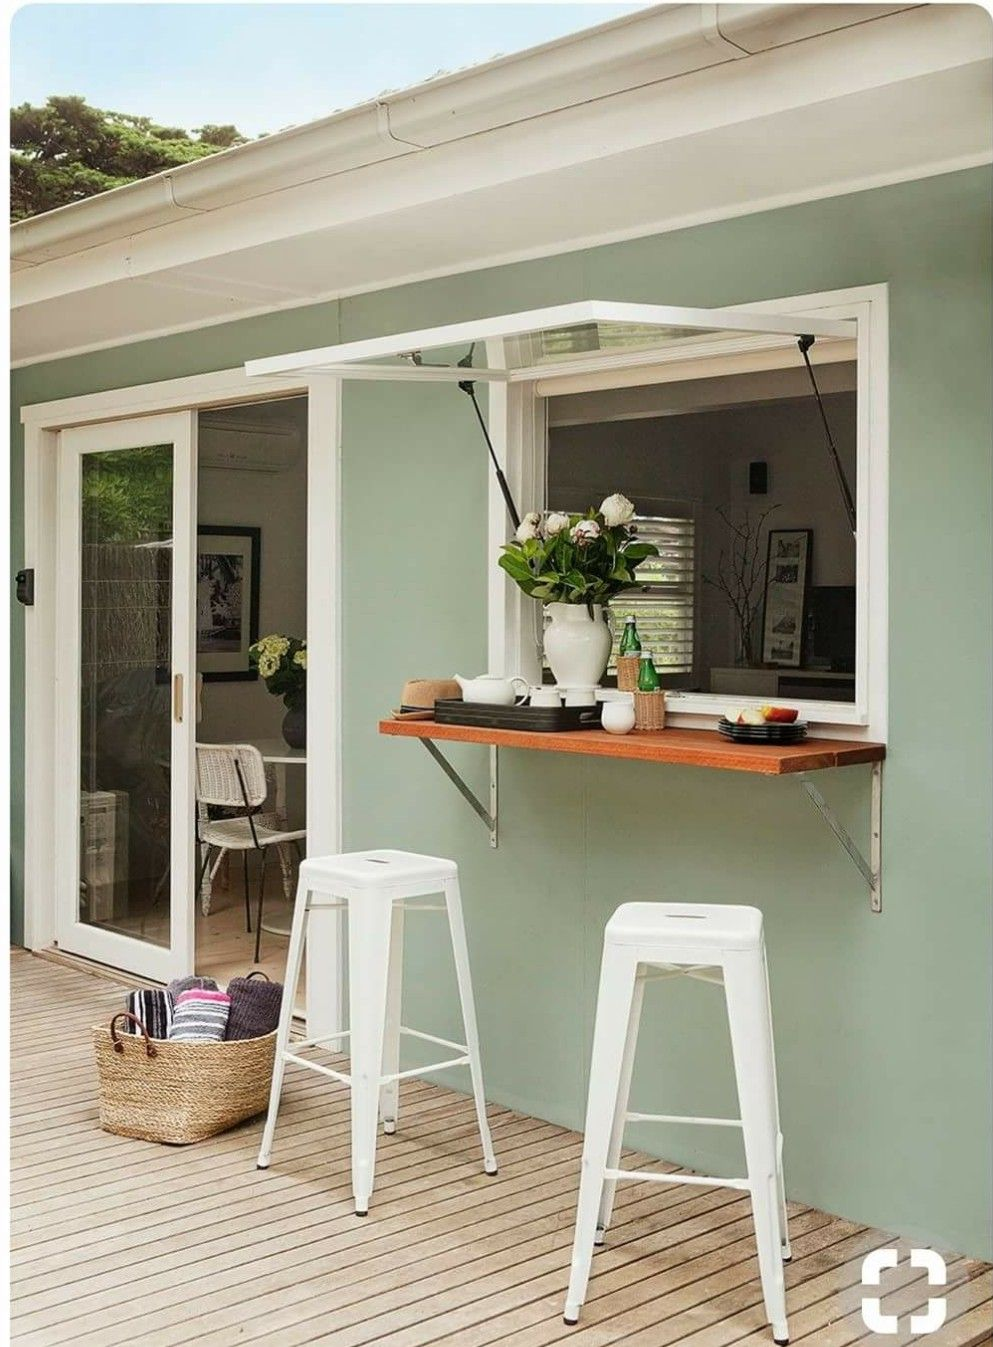 Kitchen Window Bar   House, Home remodeling, House design